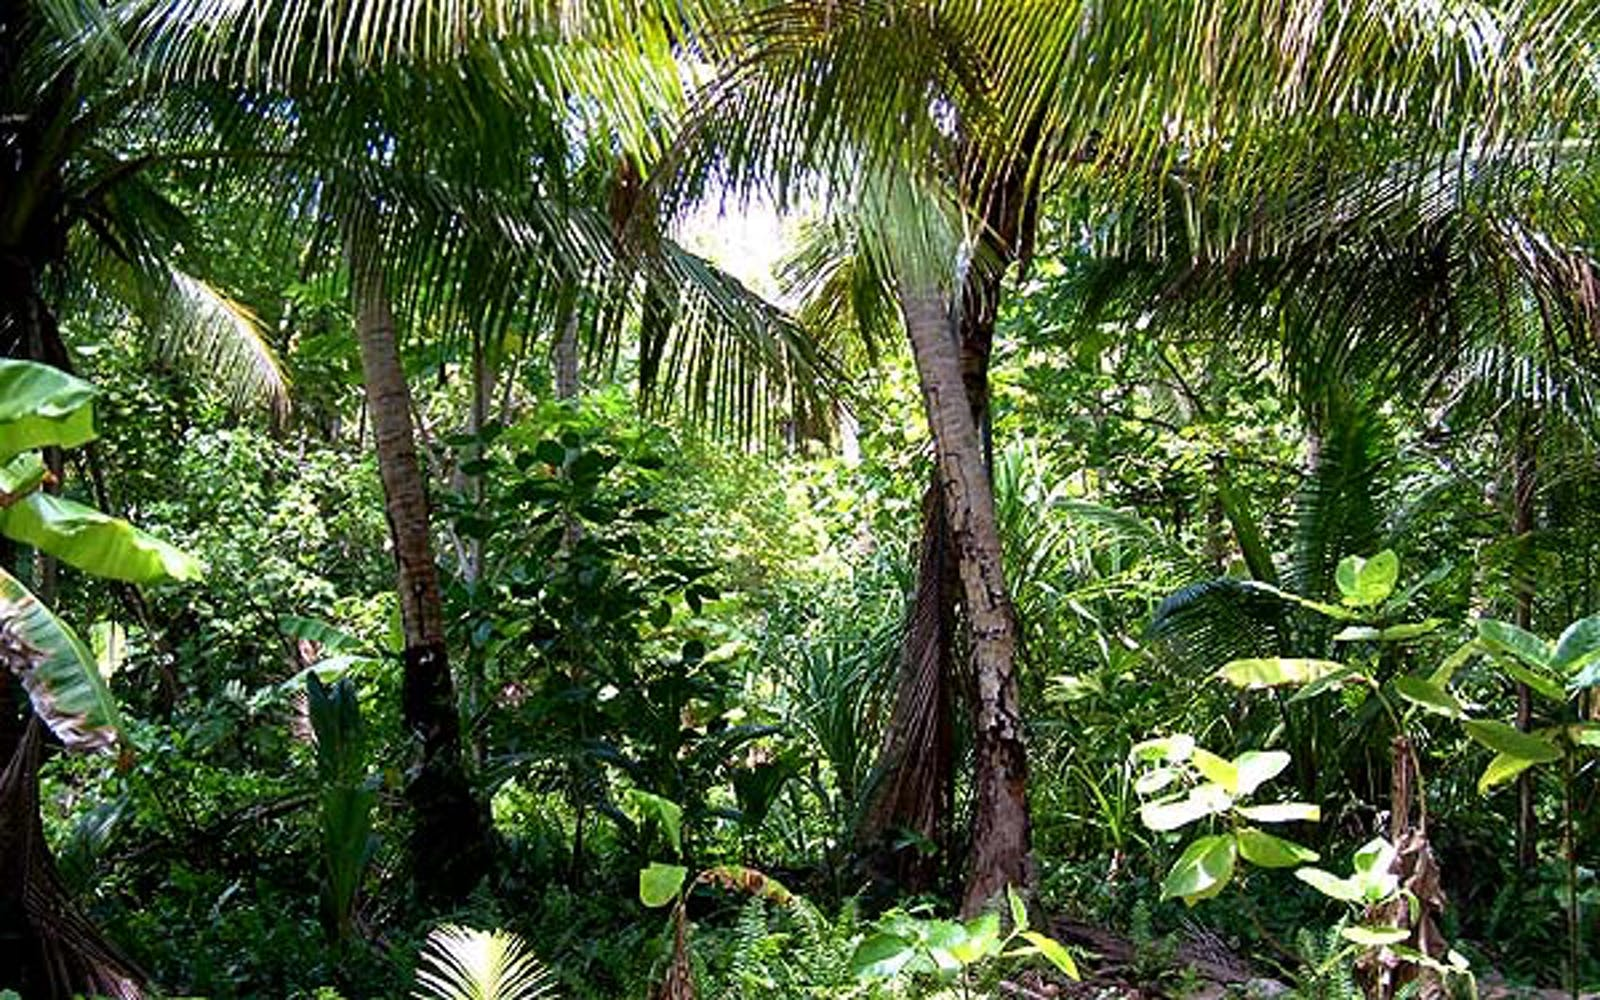 Yap Tropical Dry Forests